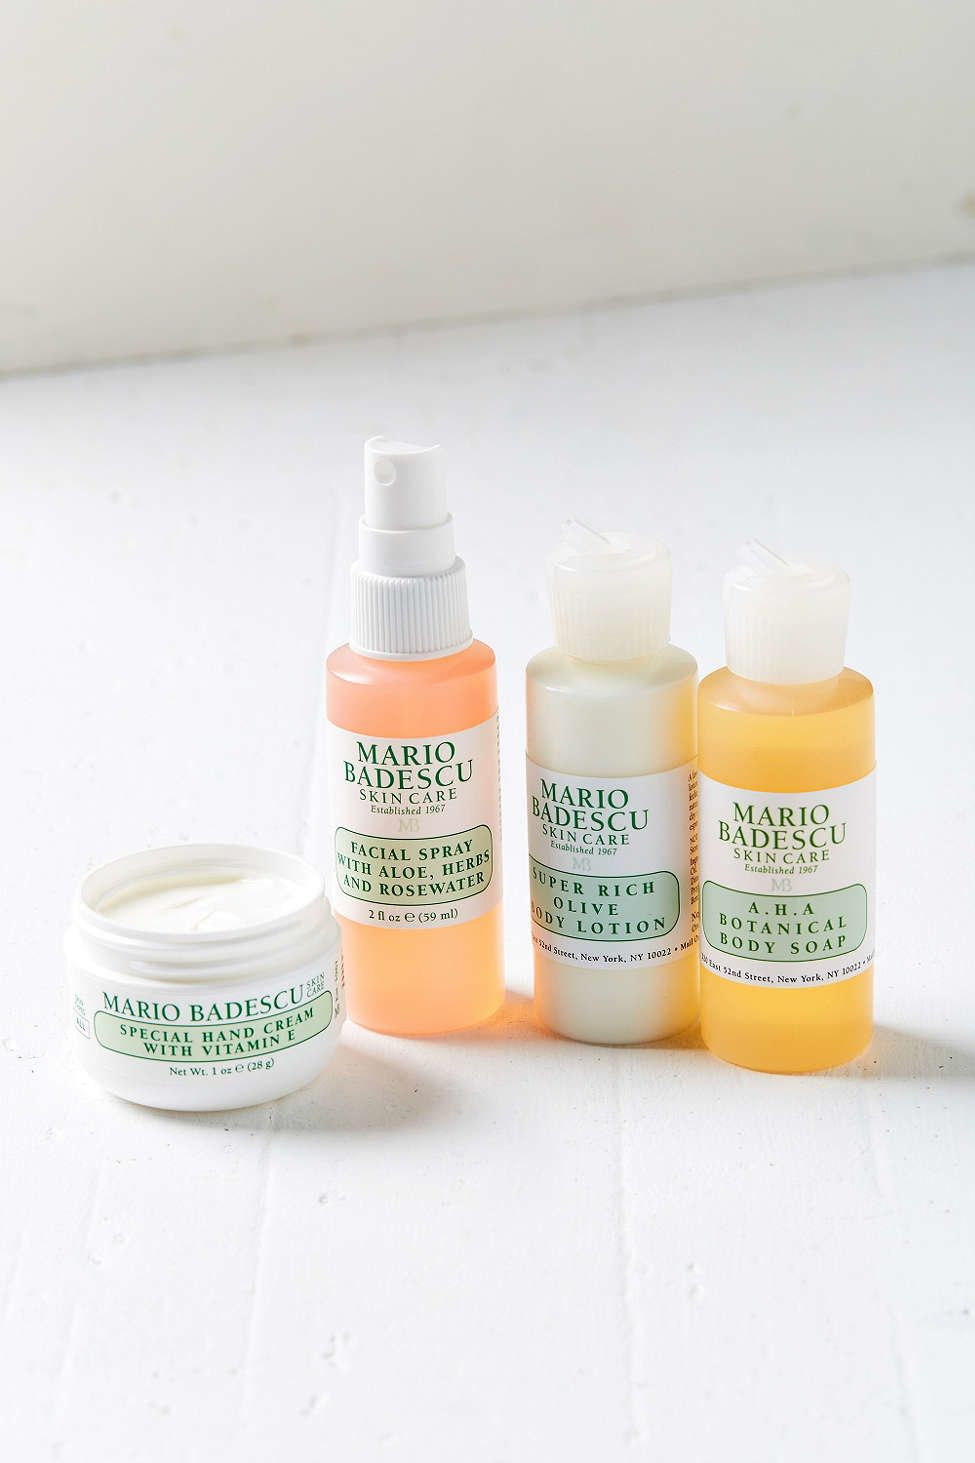 "Mario Badescu face and body set, $28, <a href=""http://www.urbanoutfitters.com/urban/catalog/productdetail.jsp?id=40911042&category=W_FORHER2"" target=""_blank"">Urban Outfitters</a>"